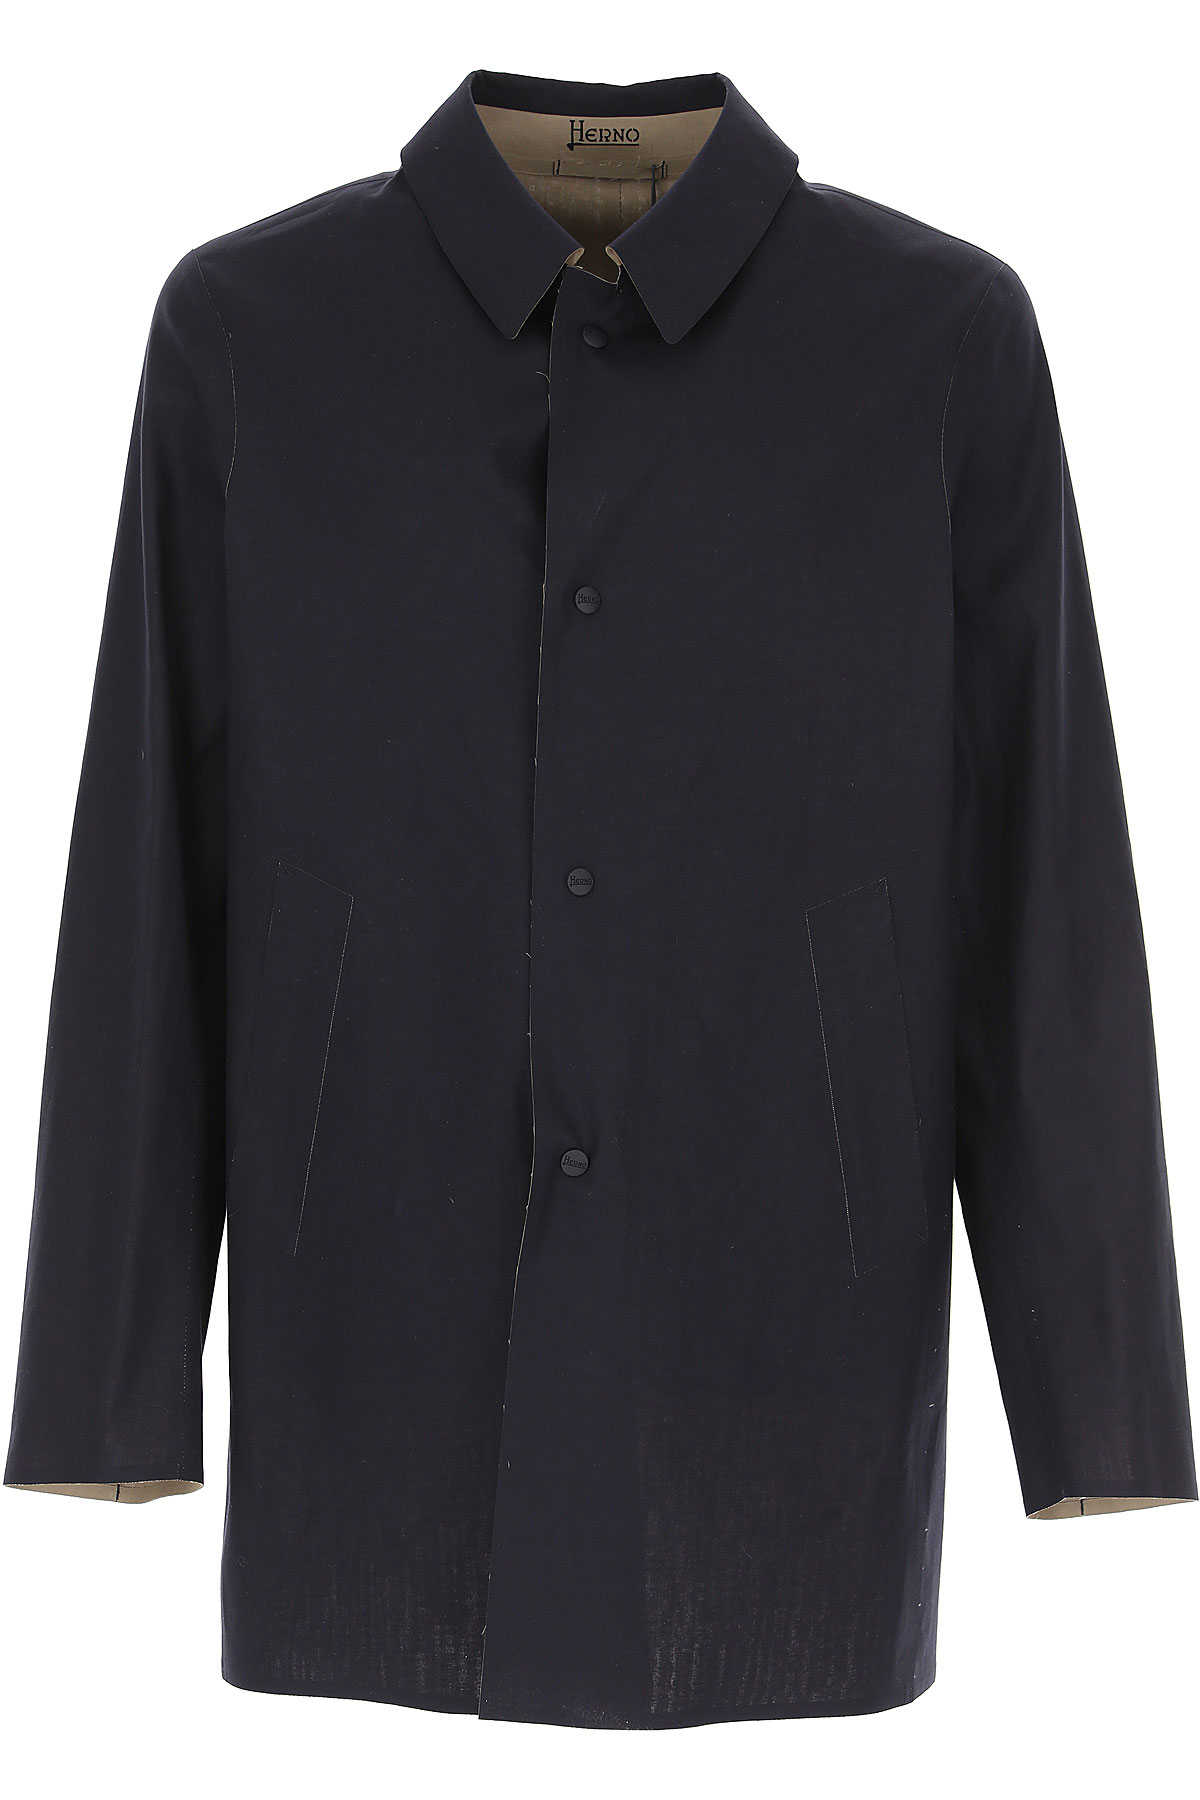 Herno Men's Coat navy USA - GOOFASH